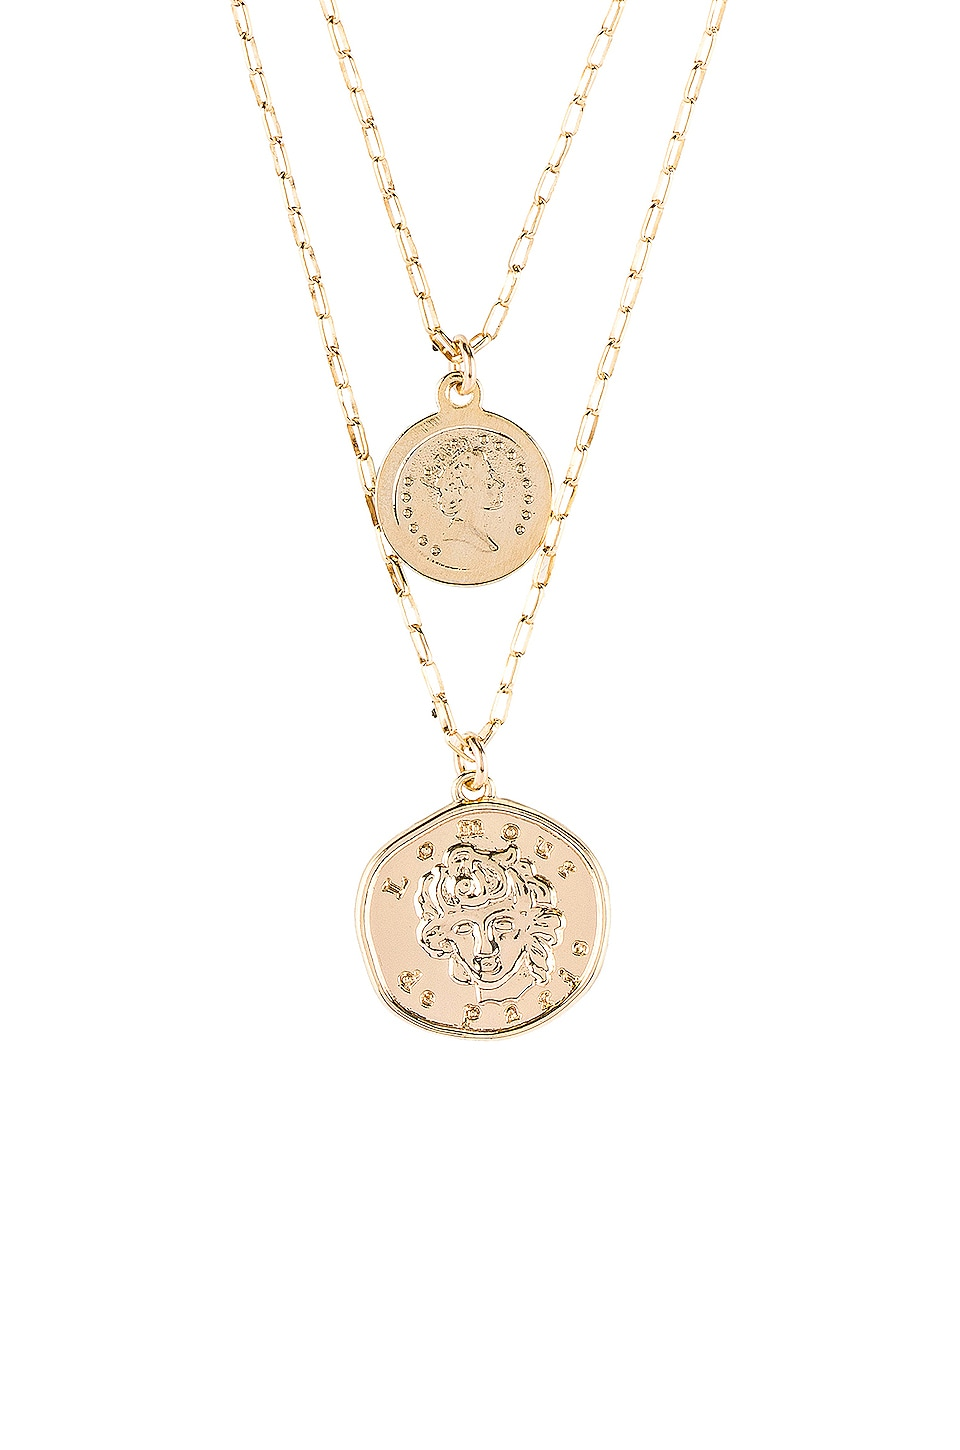 Natalie B Jewelry x REVOLVE Lomour Double Coin Necklace in Gold